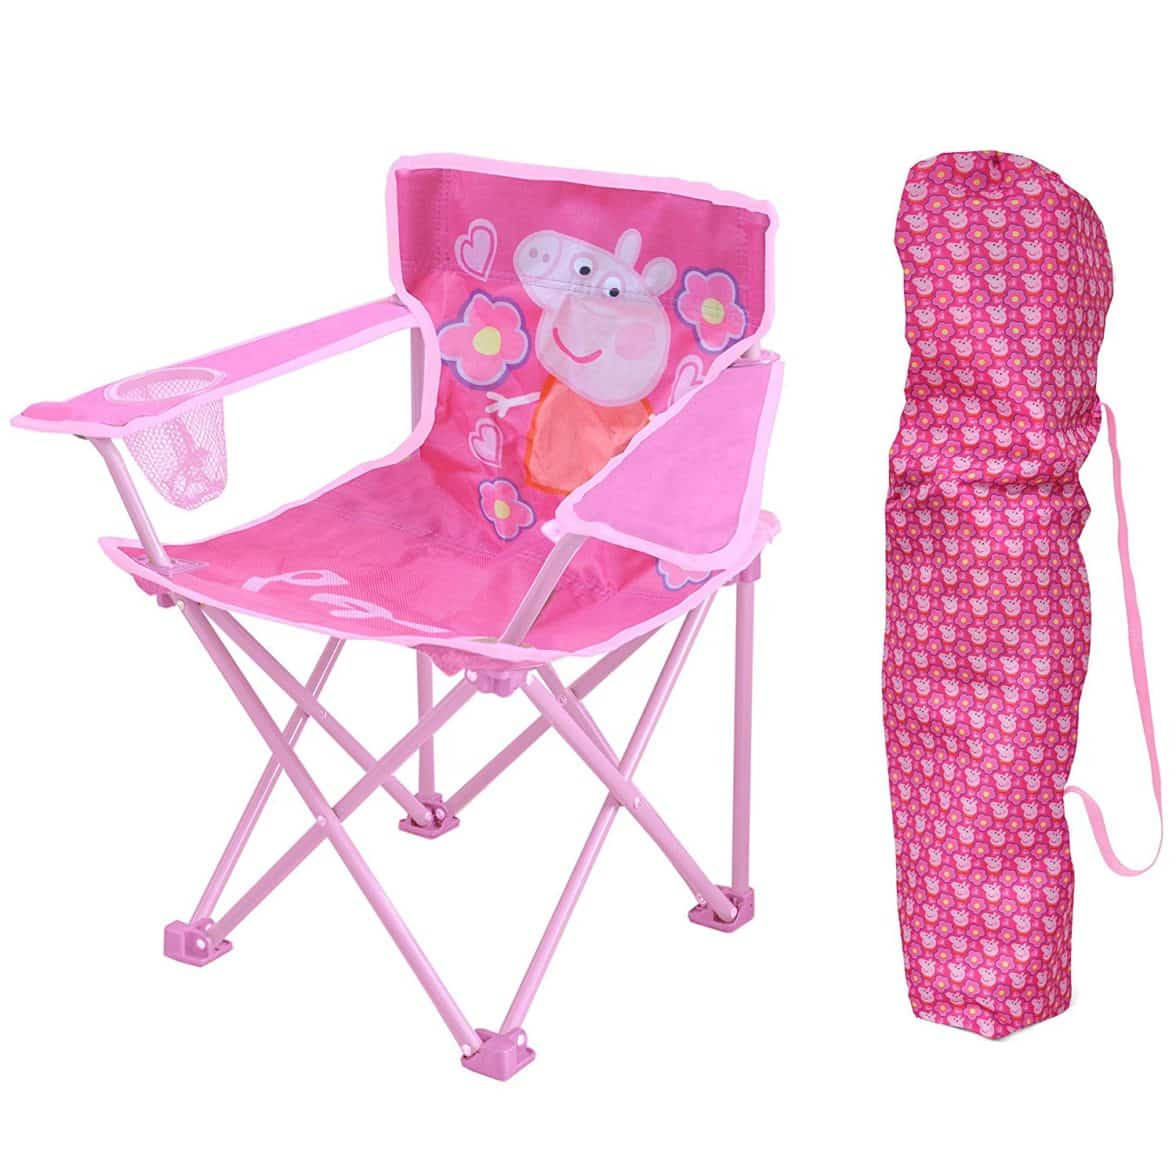 child camping chair adirondack plans lowes peppa pig family camper van the piggy store